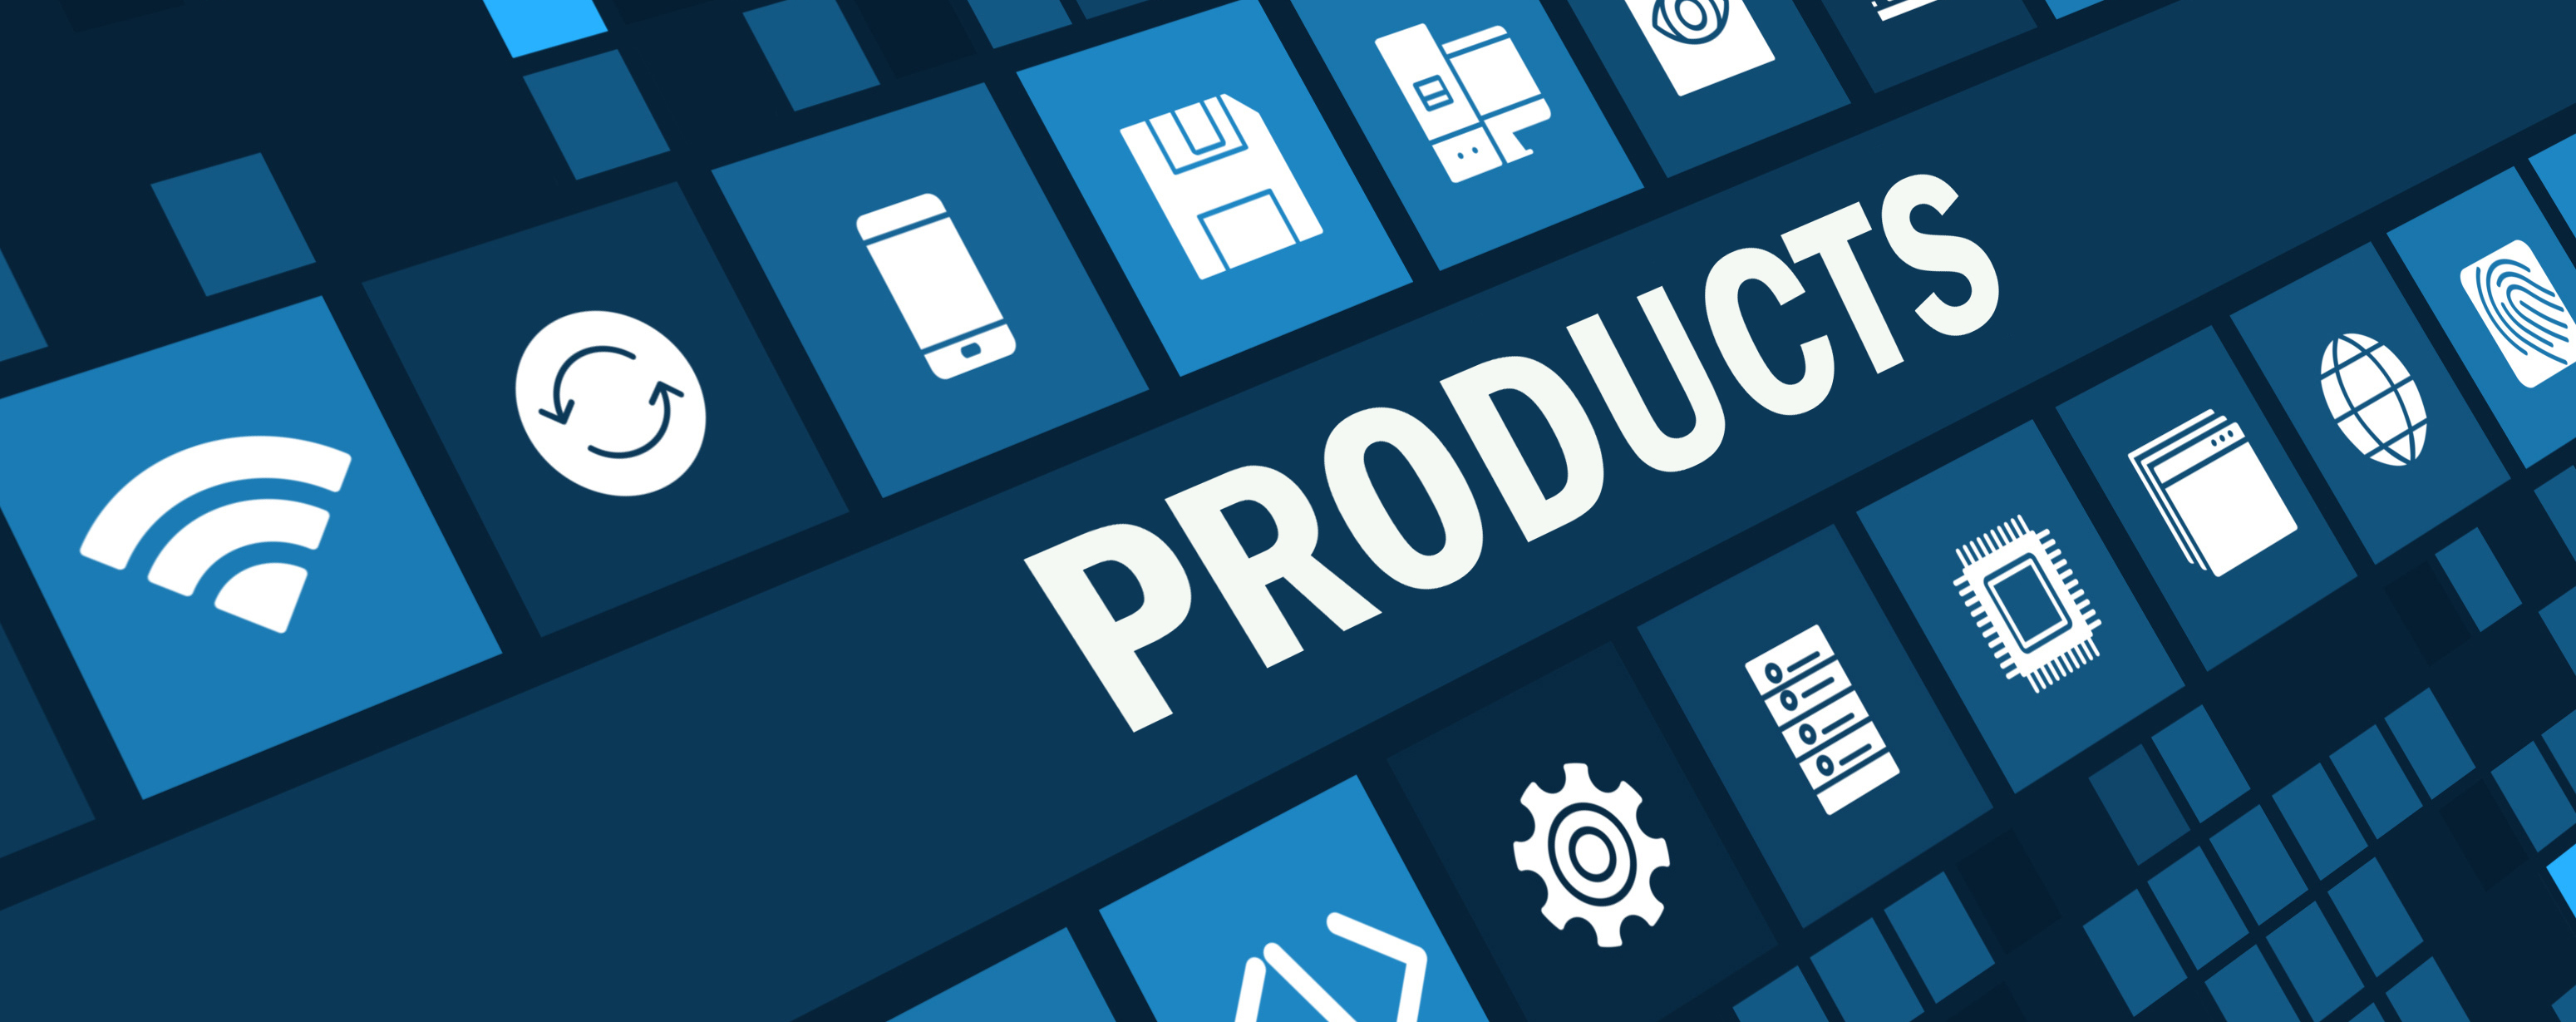 Excel-Based Reporting Products Offered By Event 1 Software